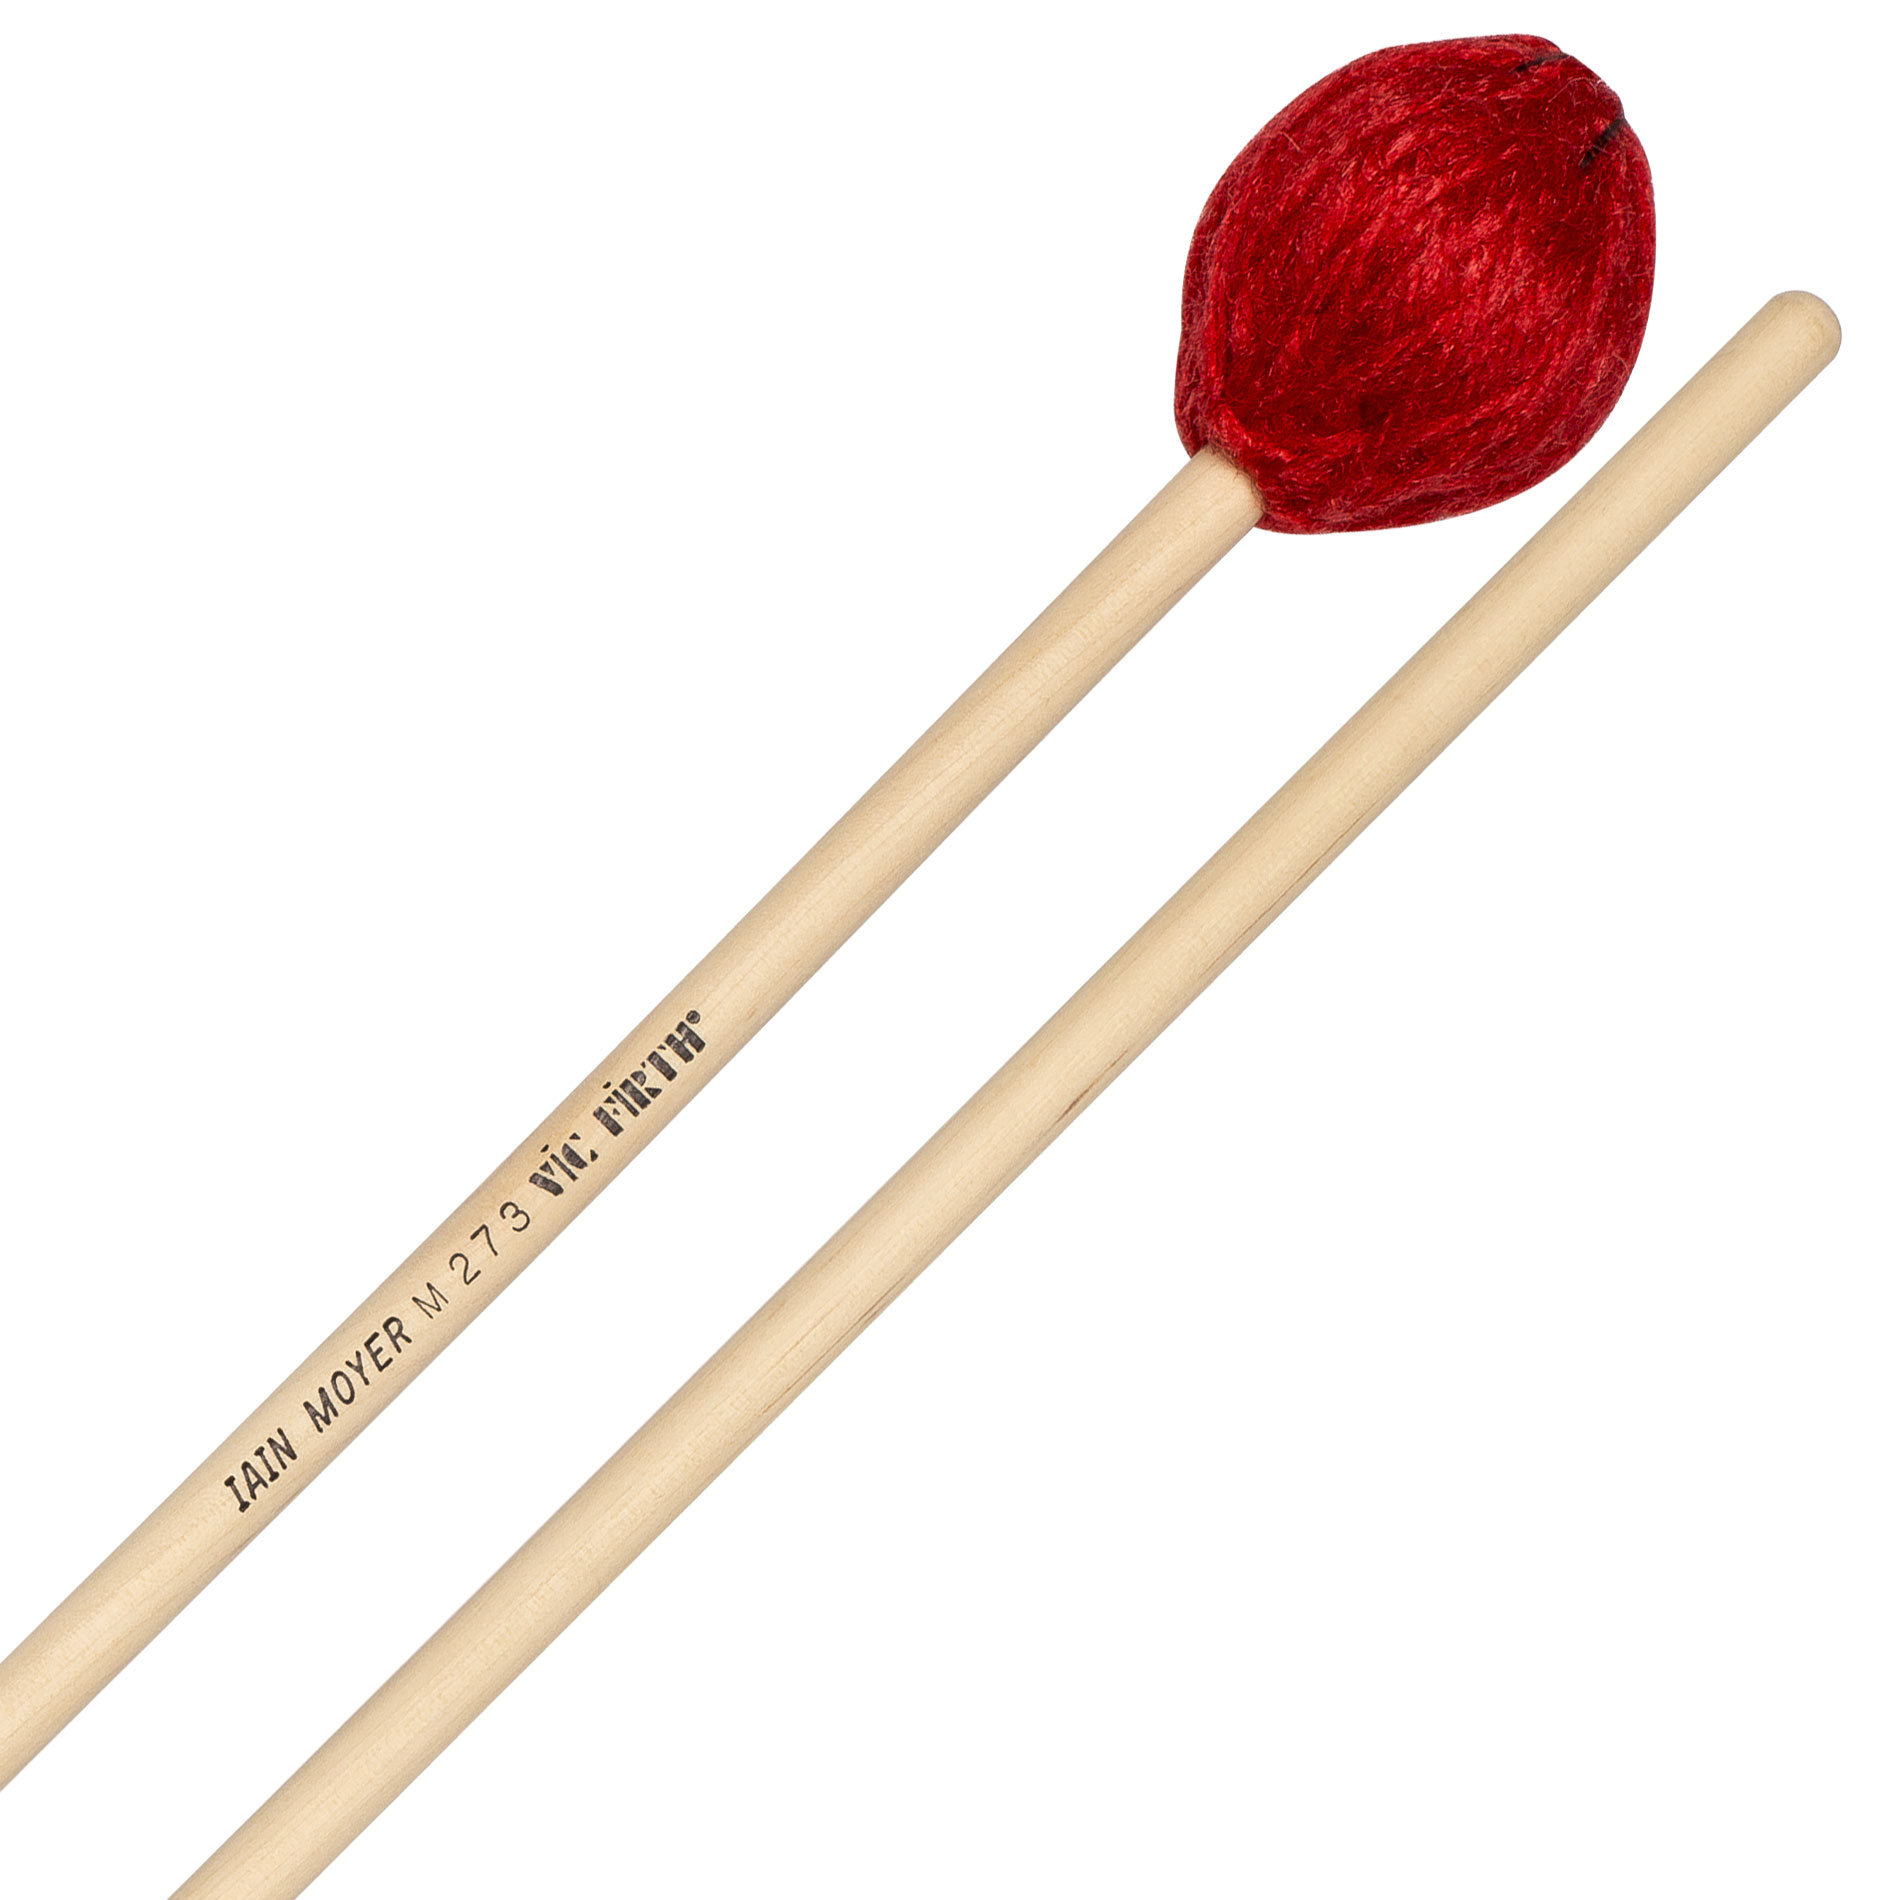 Vic Firth Corpsmaster Iain Moyer Signature Hard/Very Hard Marimba Mallets